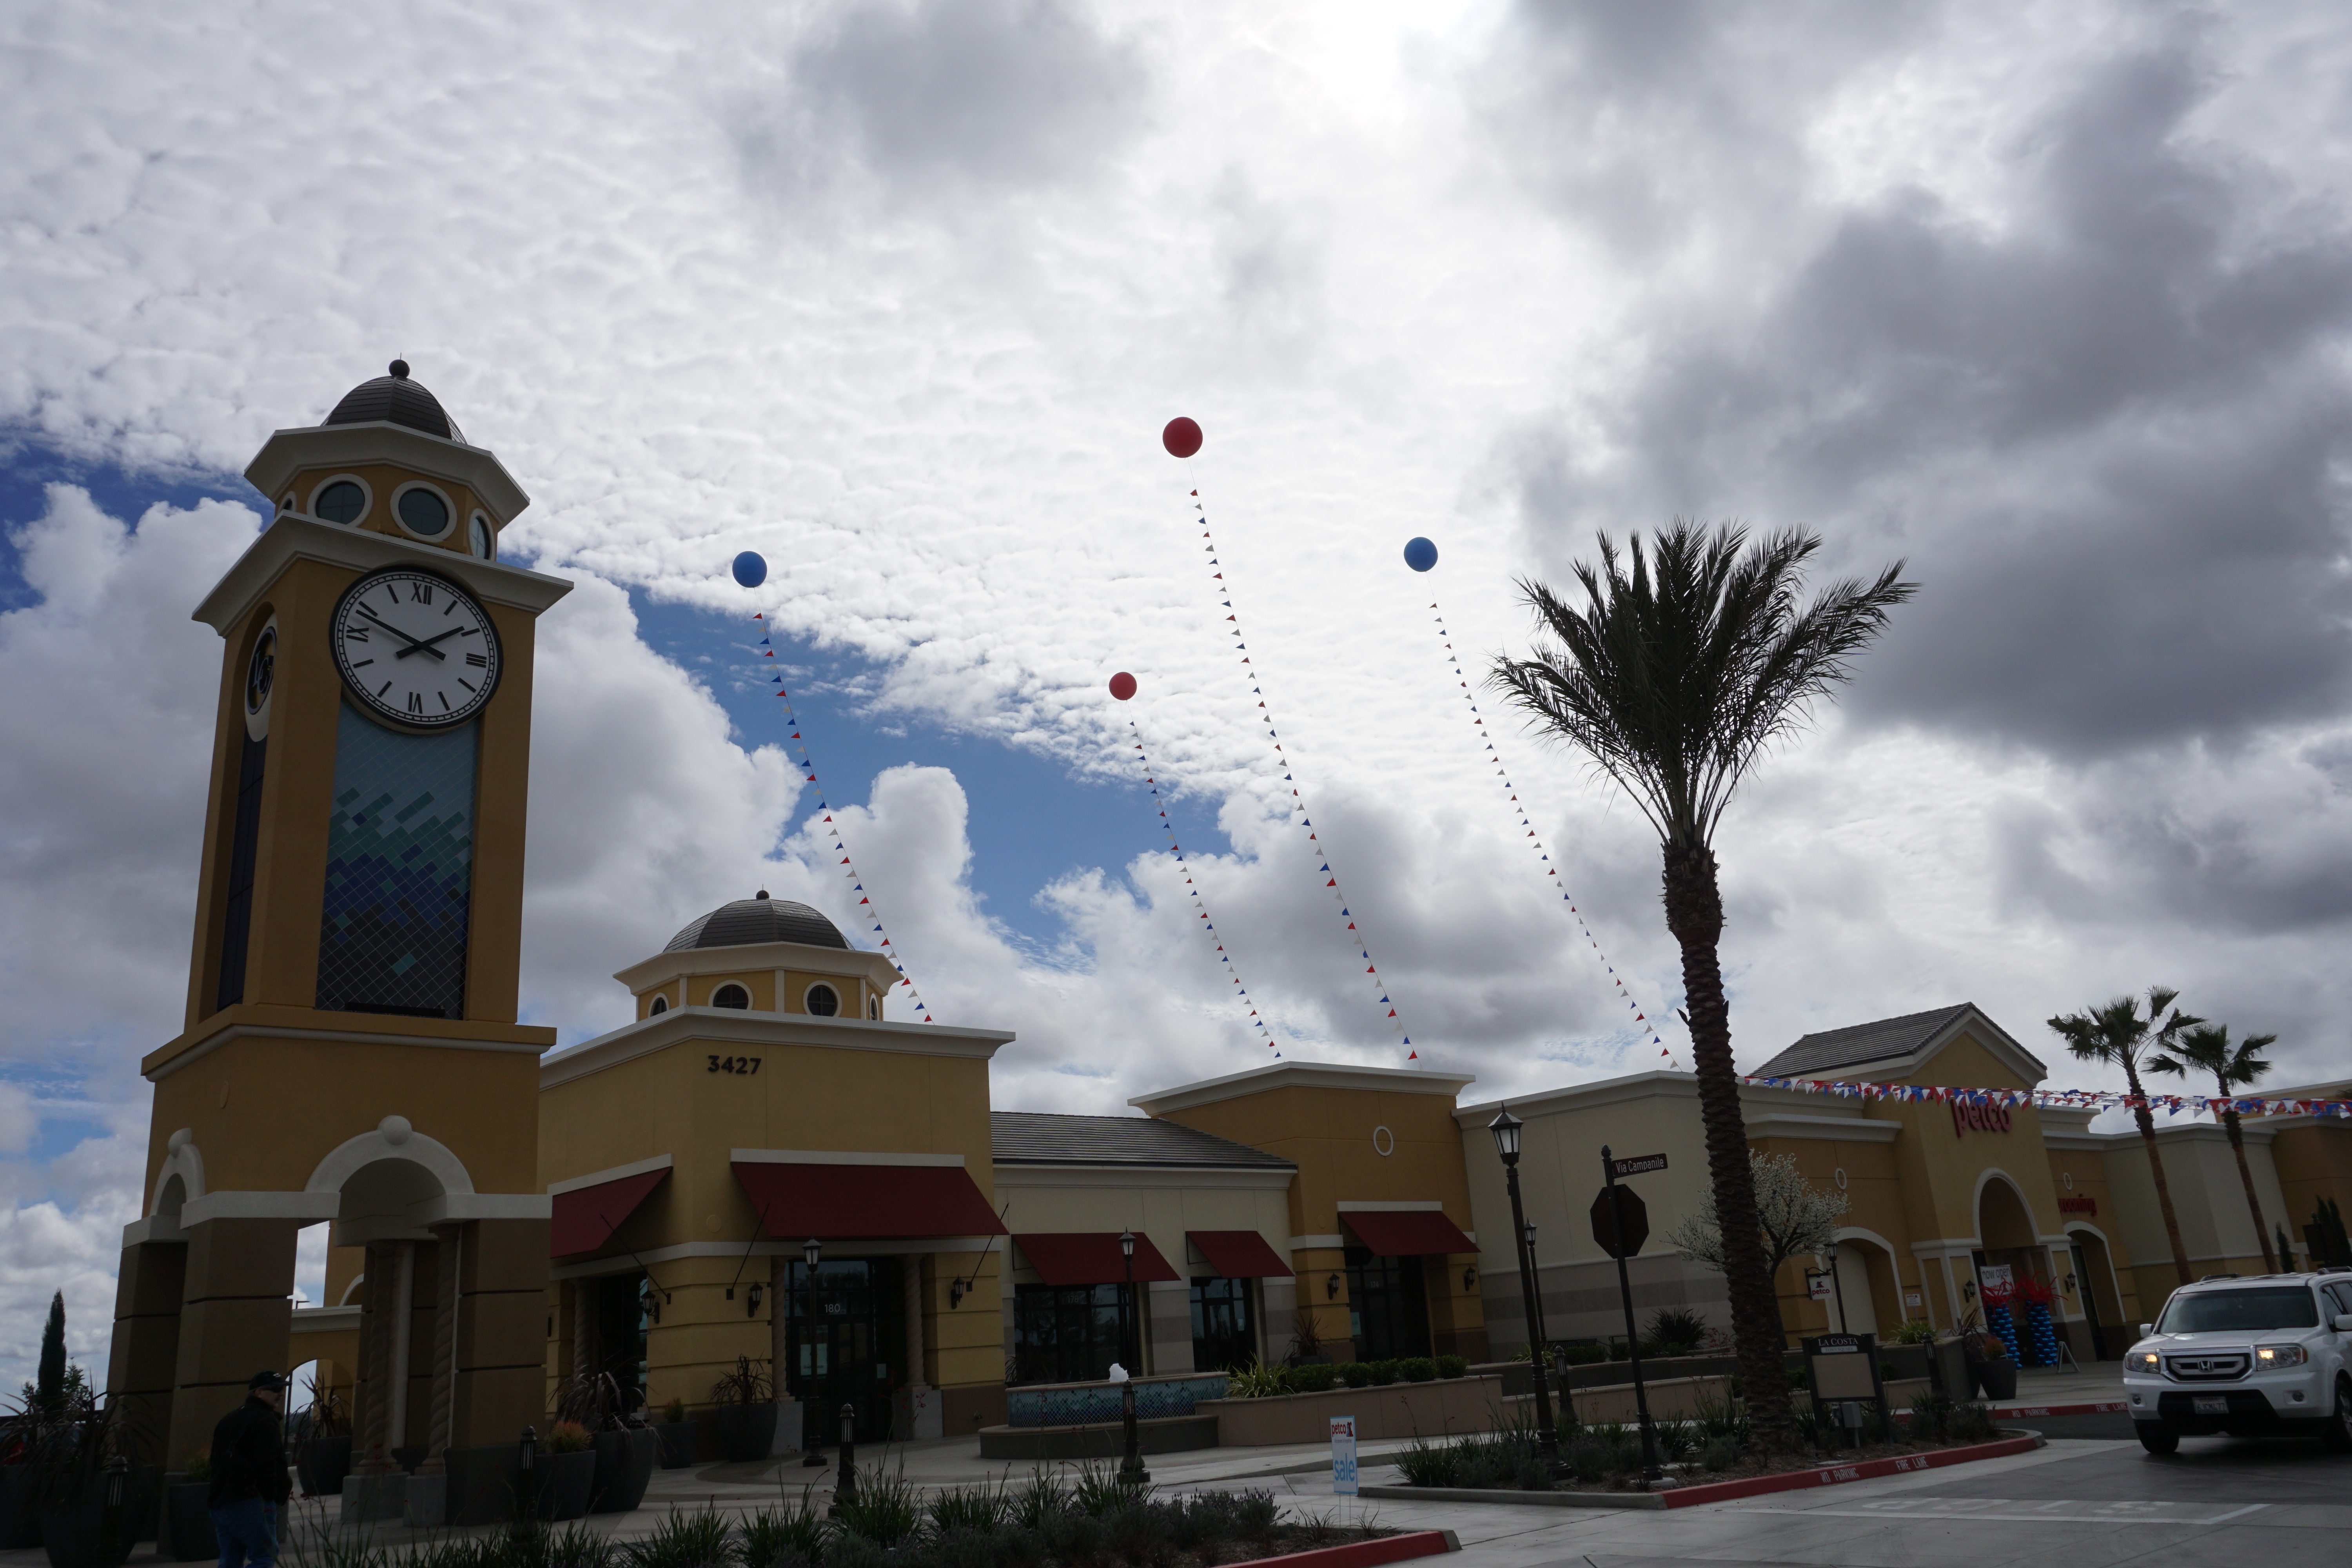 balloons over the strip mall